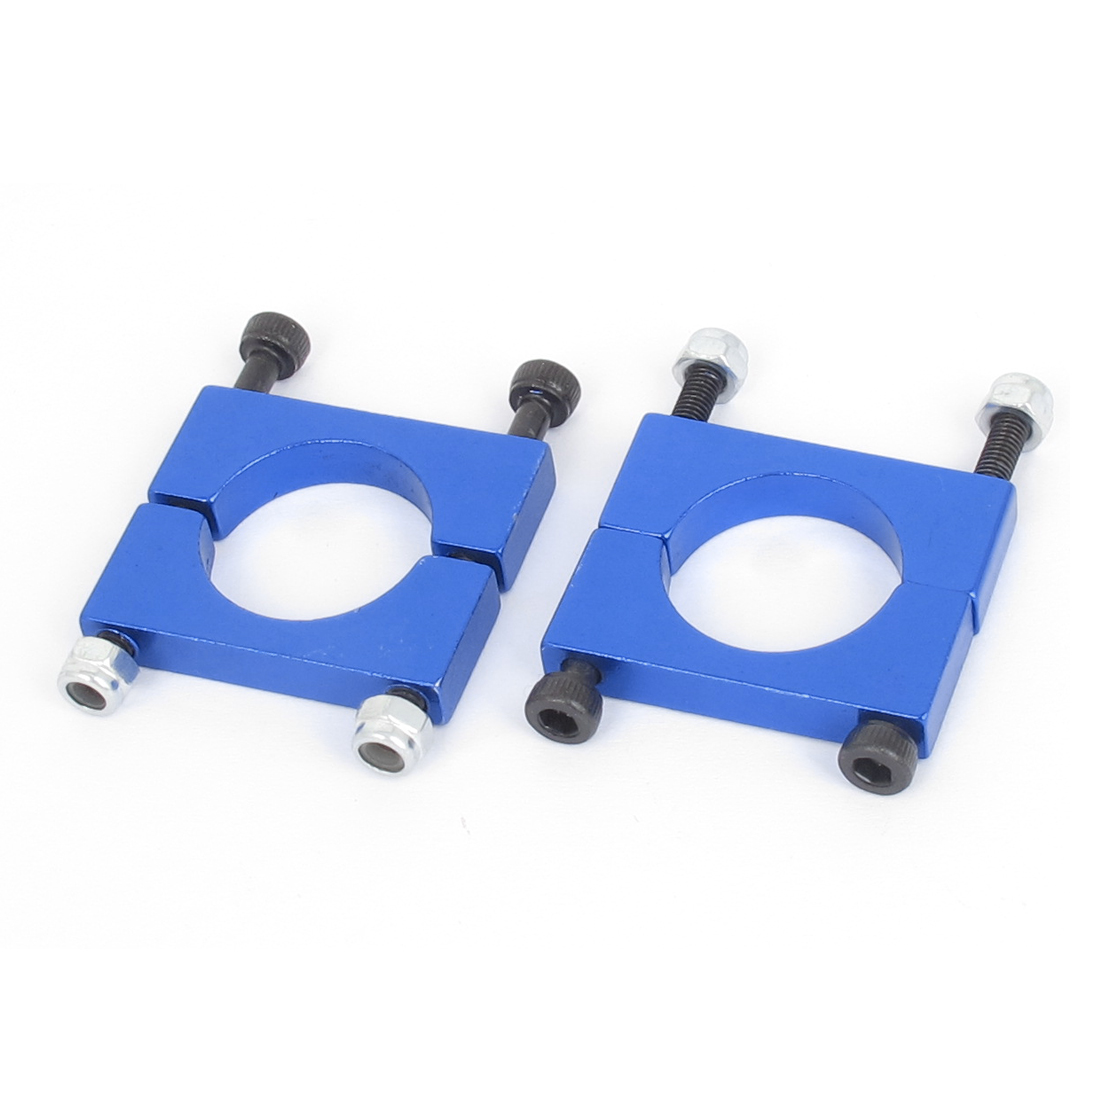 18mm Dia Multicopter Airplane Metal Tube Clip Fixture Clamp Holder Blue 2pcs